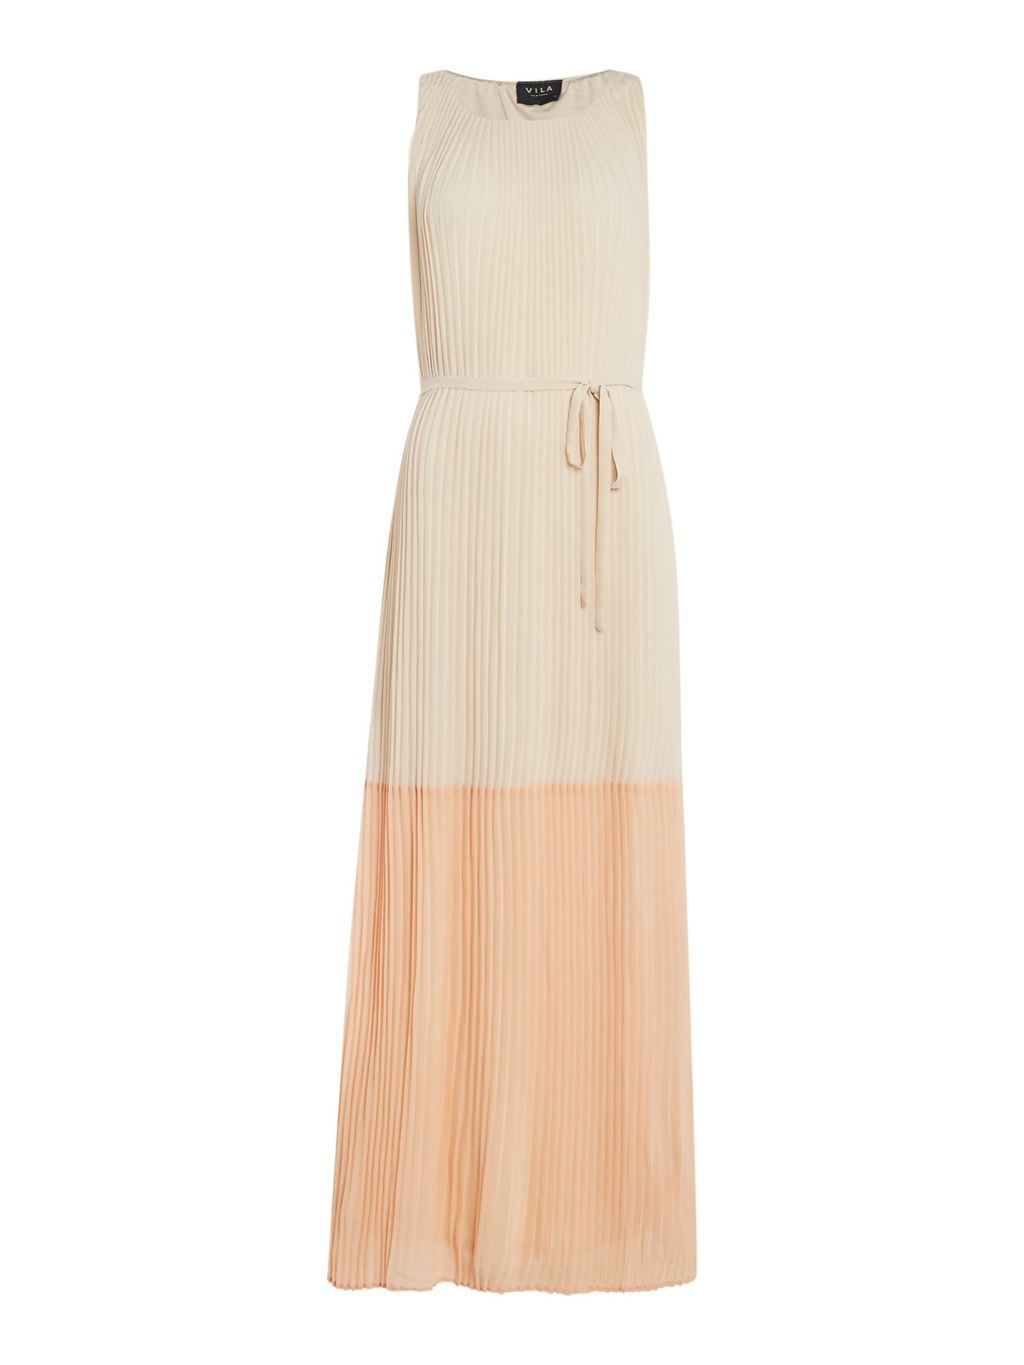 Pleated Maxi, Cream - sleeve style: sleeveless; style: maxi dress; length: ankle length; waist detail: belted waist/tie at waist/drawstring; predominant colour: ivory/cream; secondary colour: nude; occasions: evening; fit: body skimming; fibres: polyester/polyamide - 100%; neckline: crew; sleeve length: sleeveless; pattern type: fabric; pattern: colourblock; texture group: other - light to midweight; multicoloured: multicoloured; season: s/s 2016; wardrobe: event